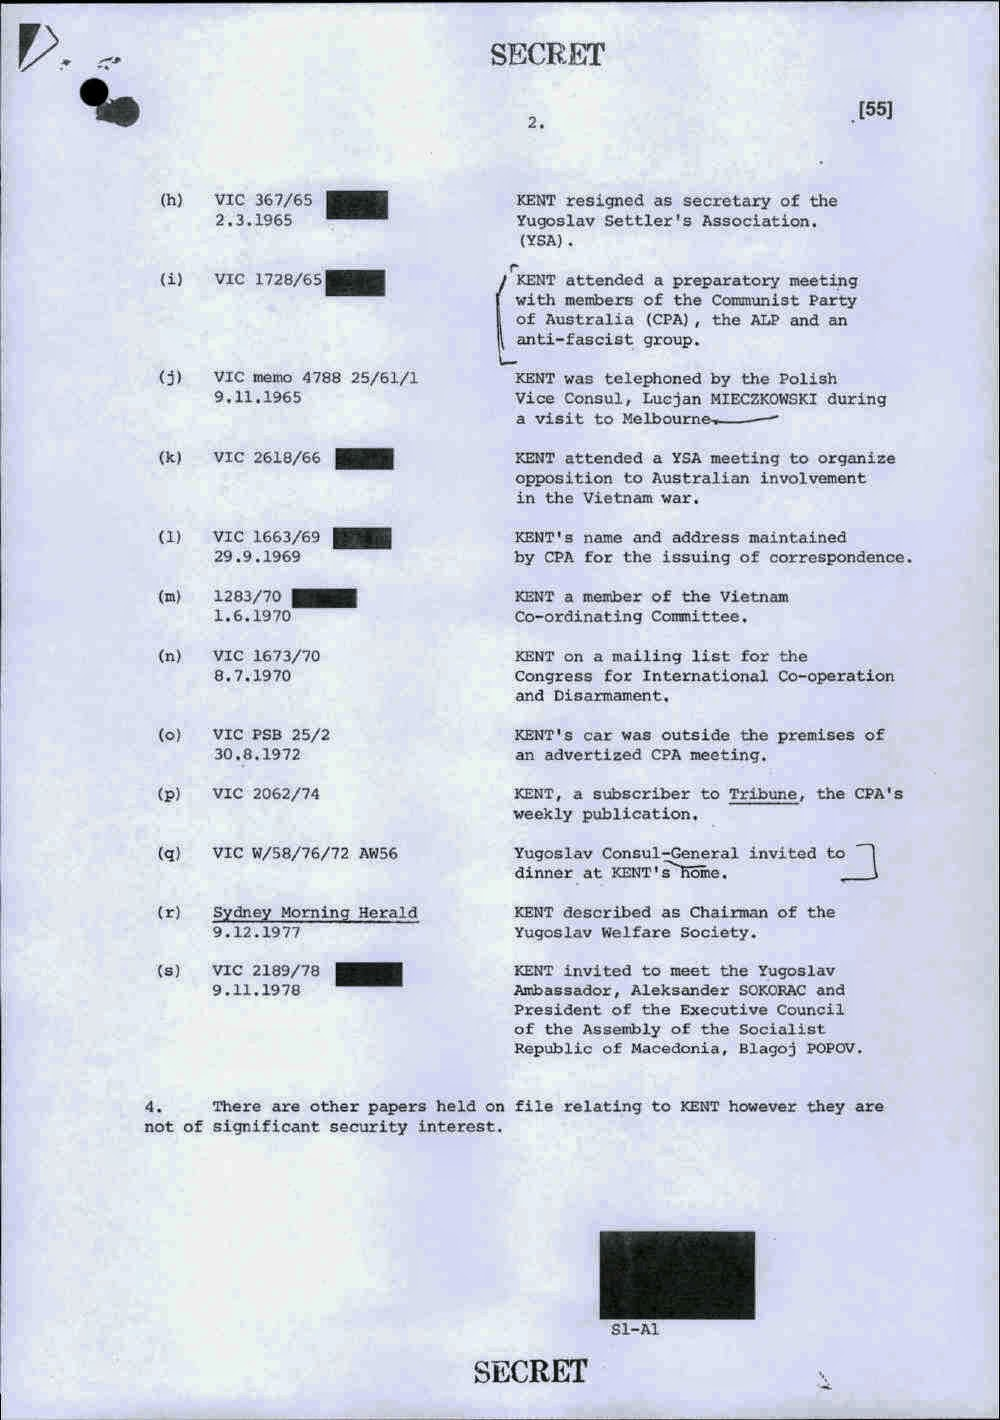 source: ASIO file available in the National Archives of Australia.www.naa.gov.au